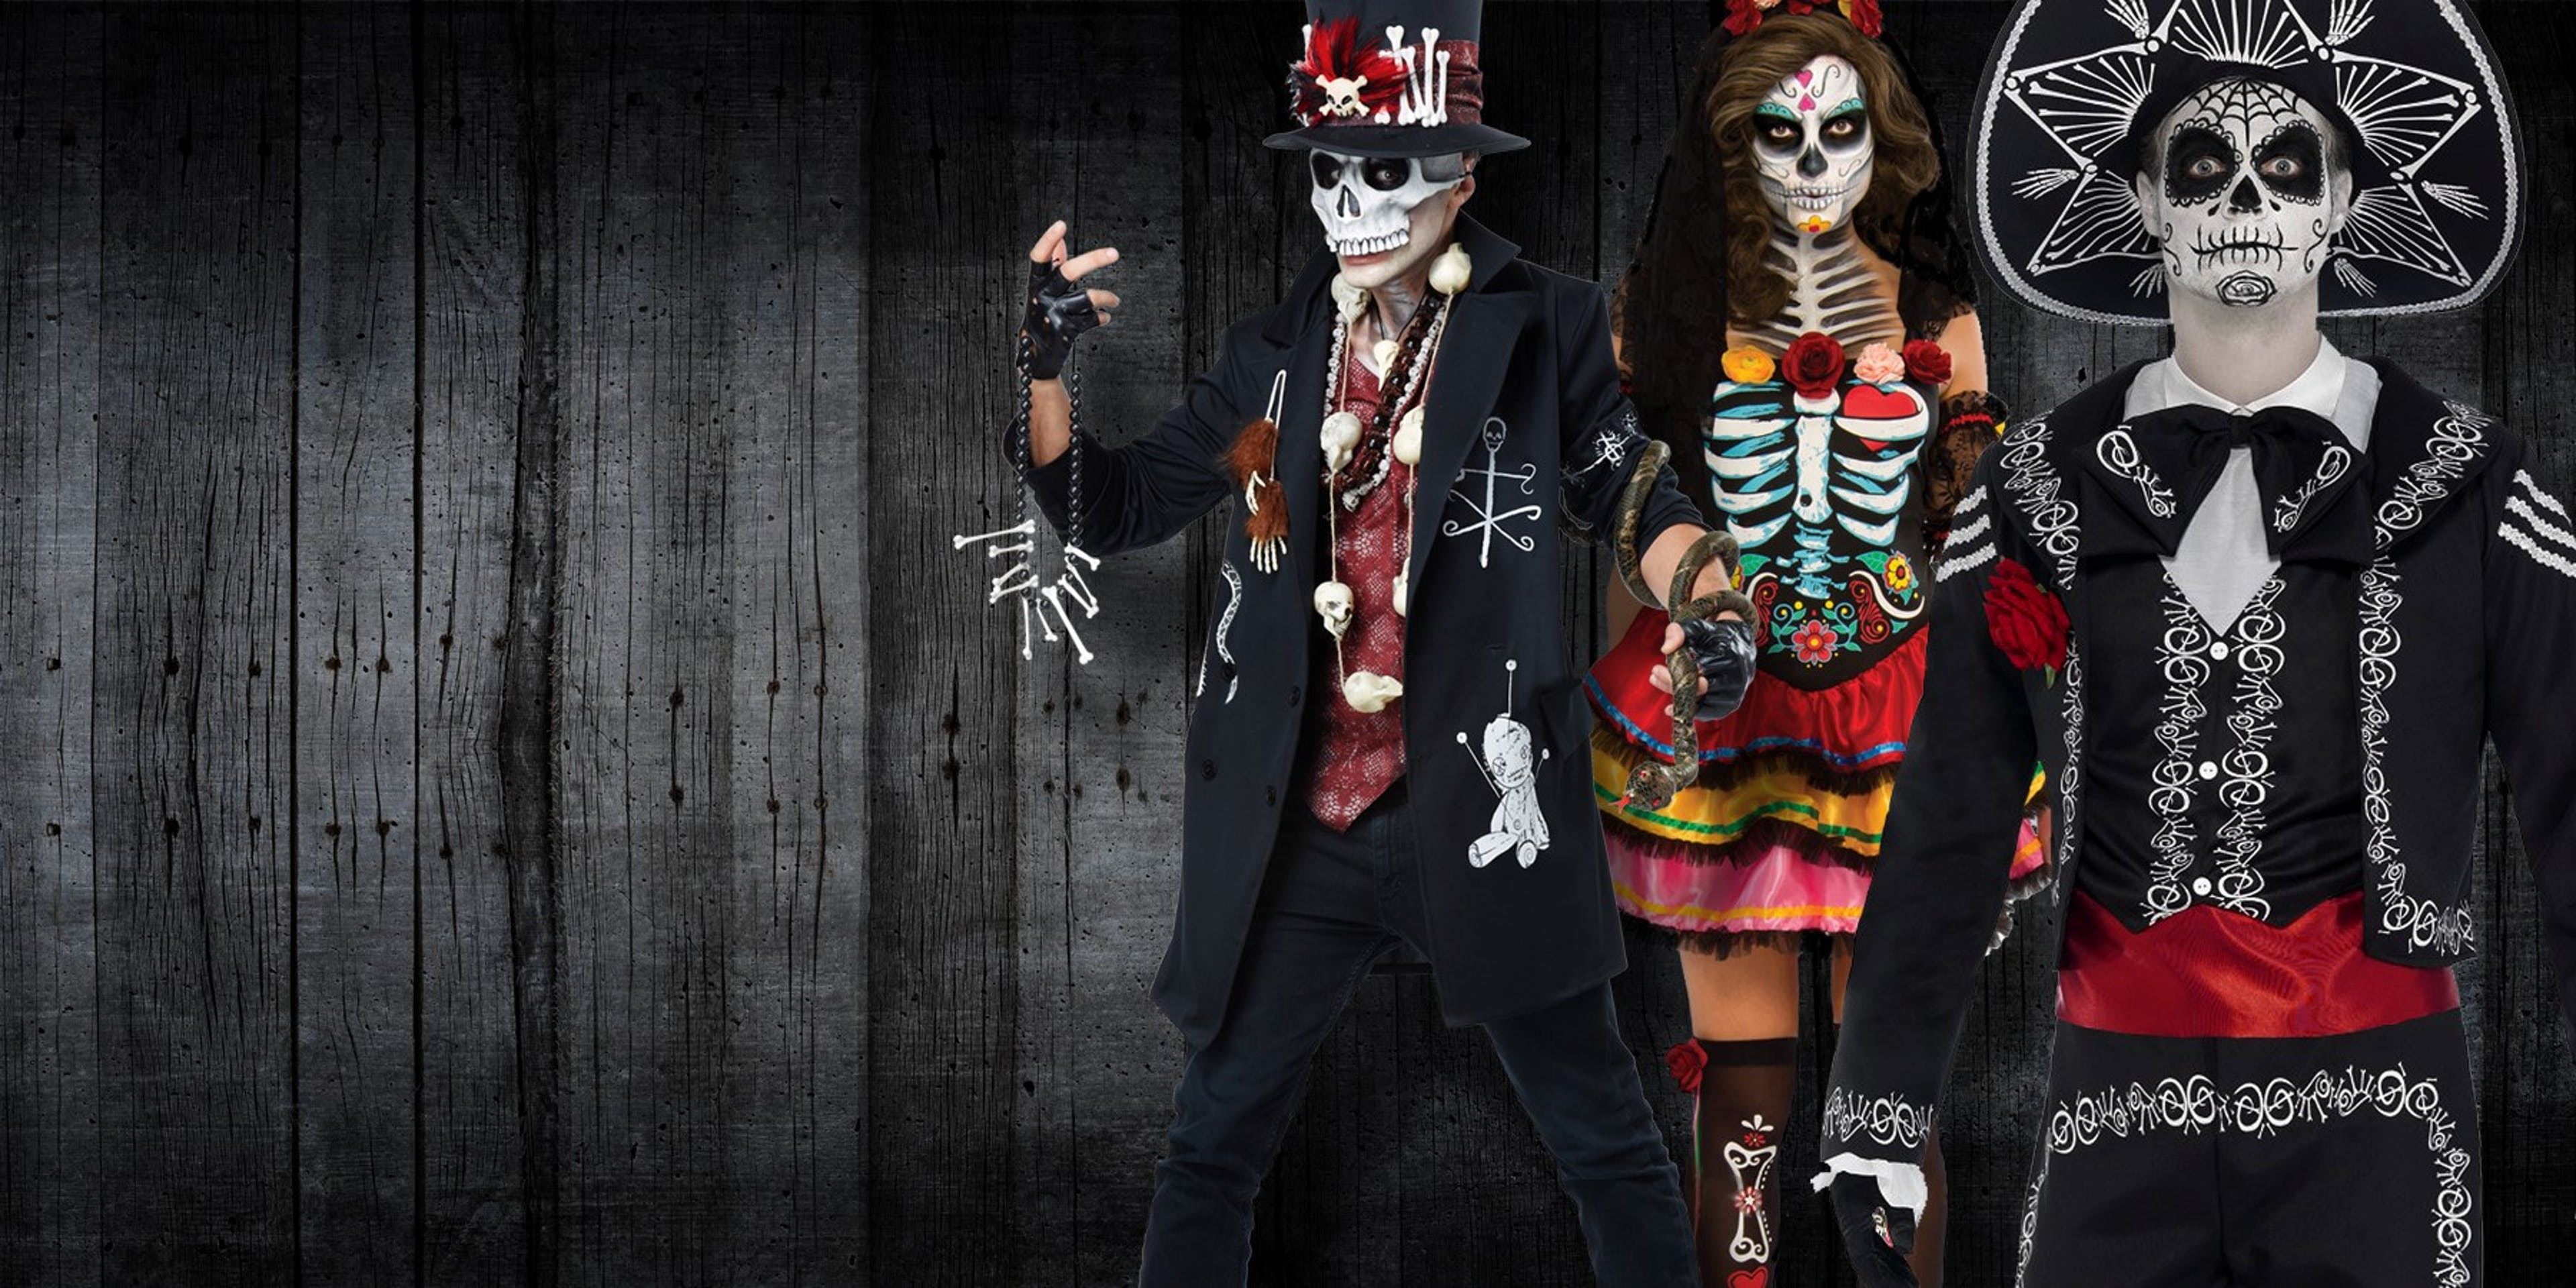 Day of the Dead costumes - Shows a group dressed up for Halloween